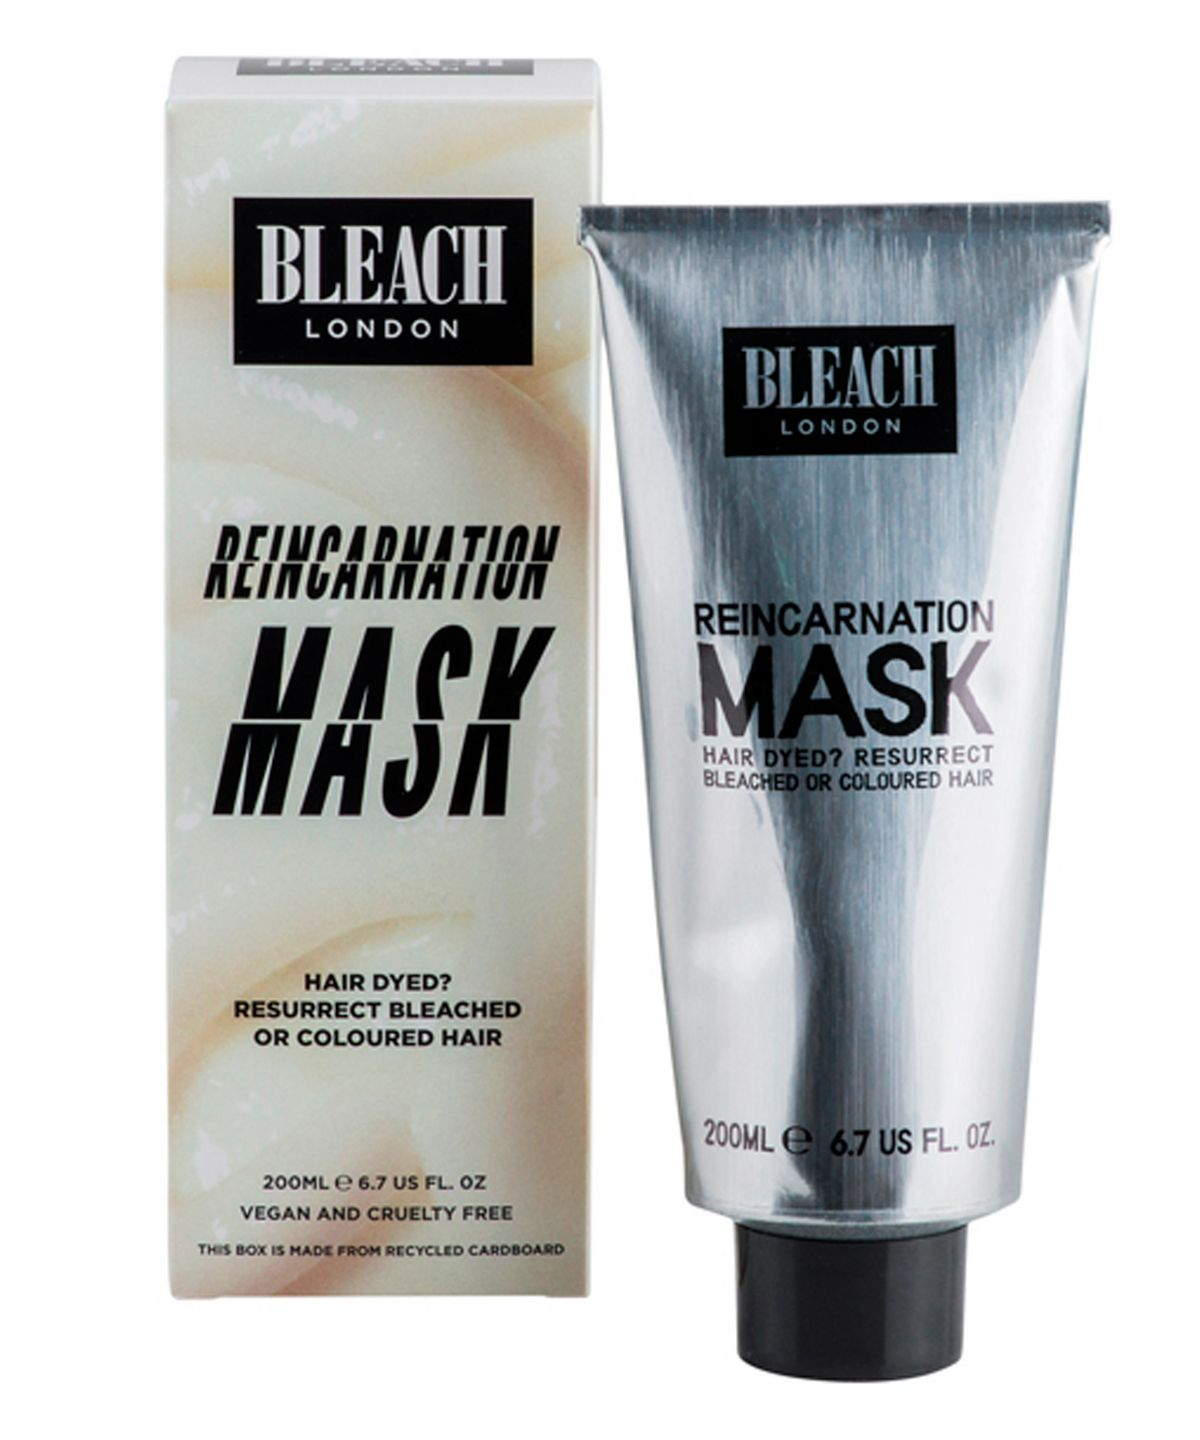 BLEACH London | Reincarnation Mask